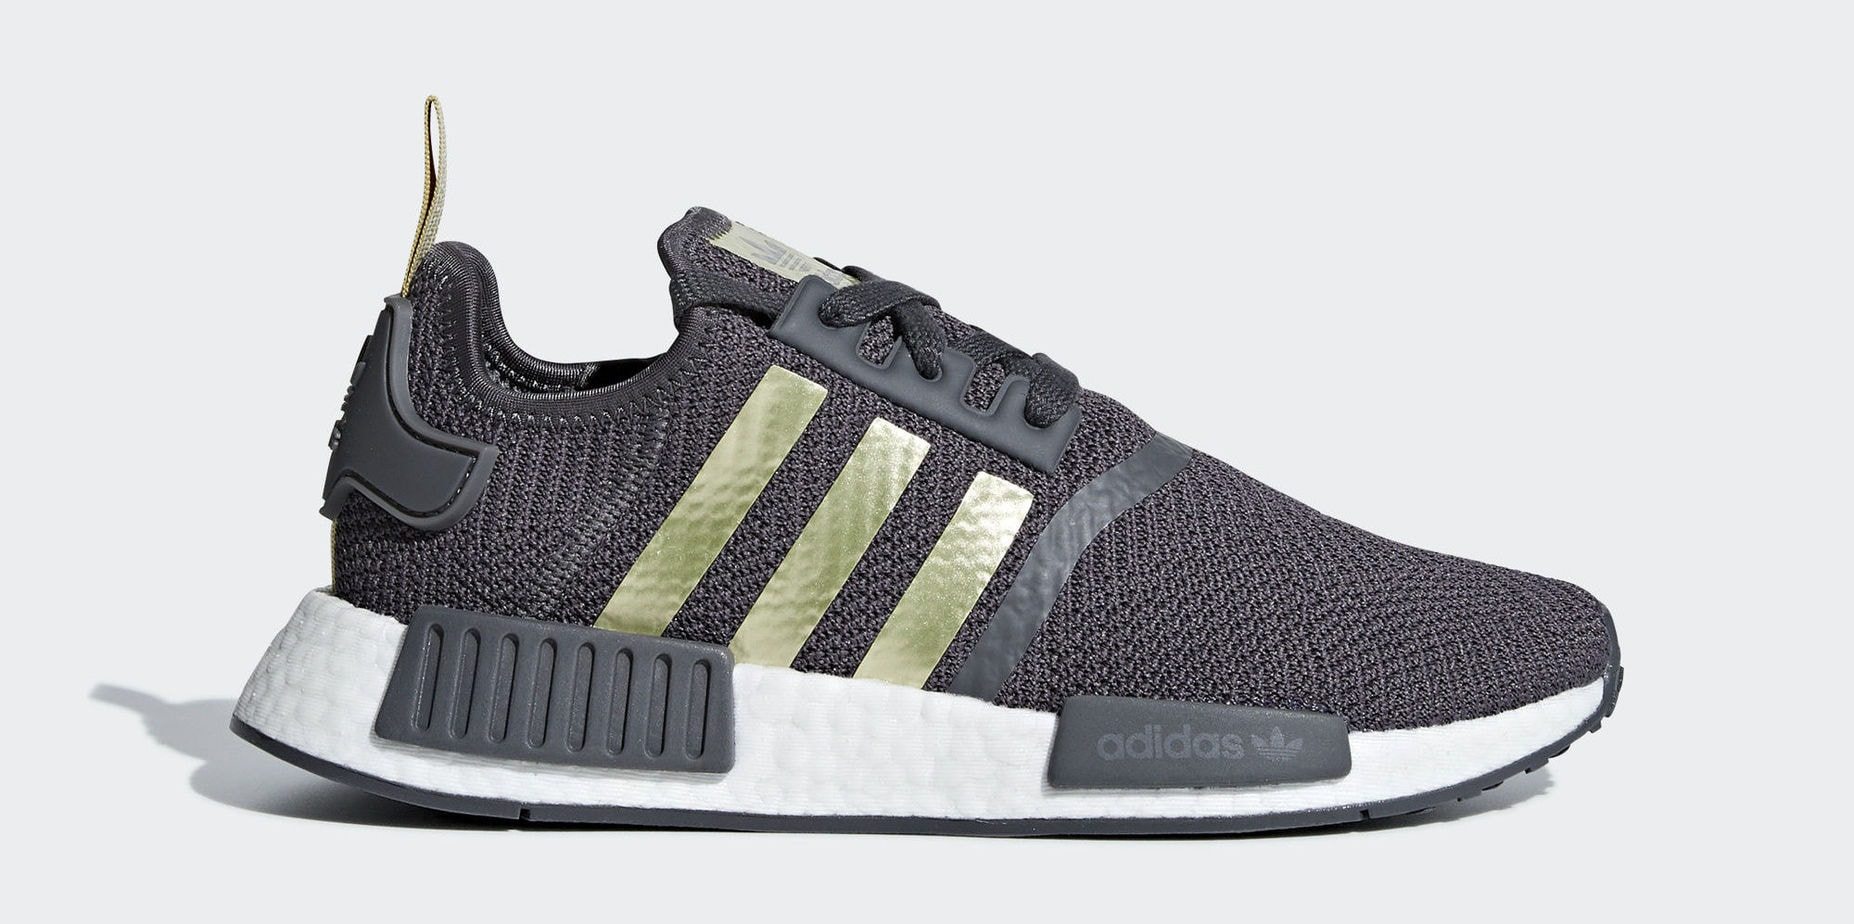 7e29d3e72 ... usa adidas w nmd r1 grey gold grey five gold metallic pyrite august 17  2018 b55d5